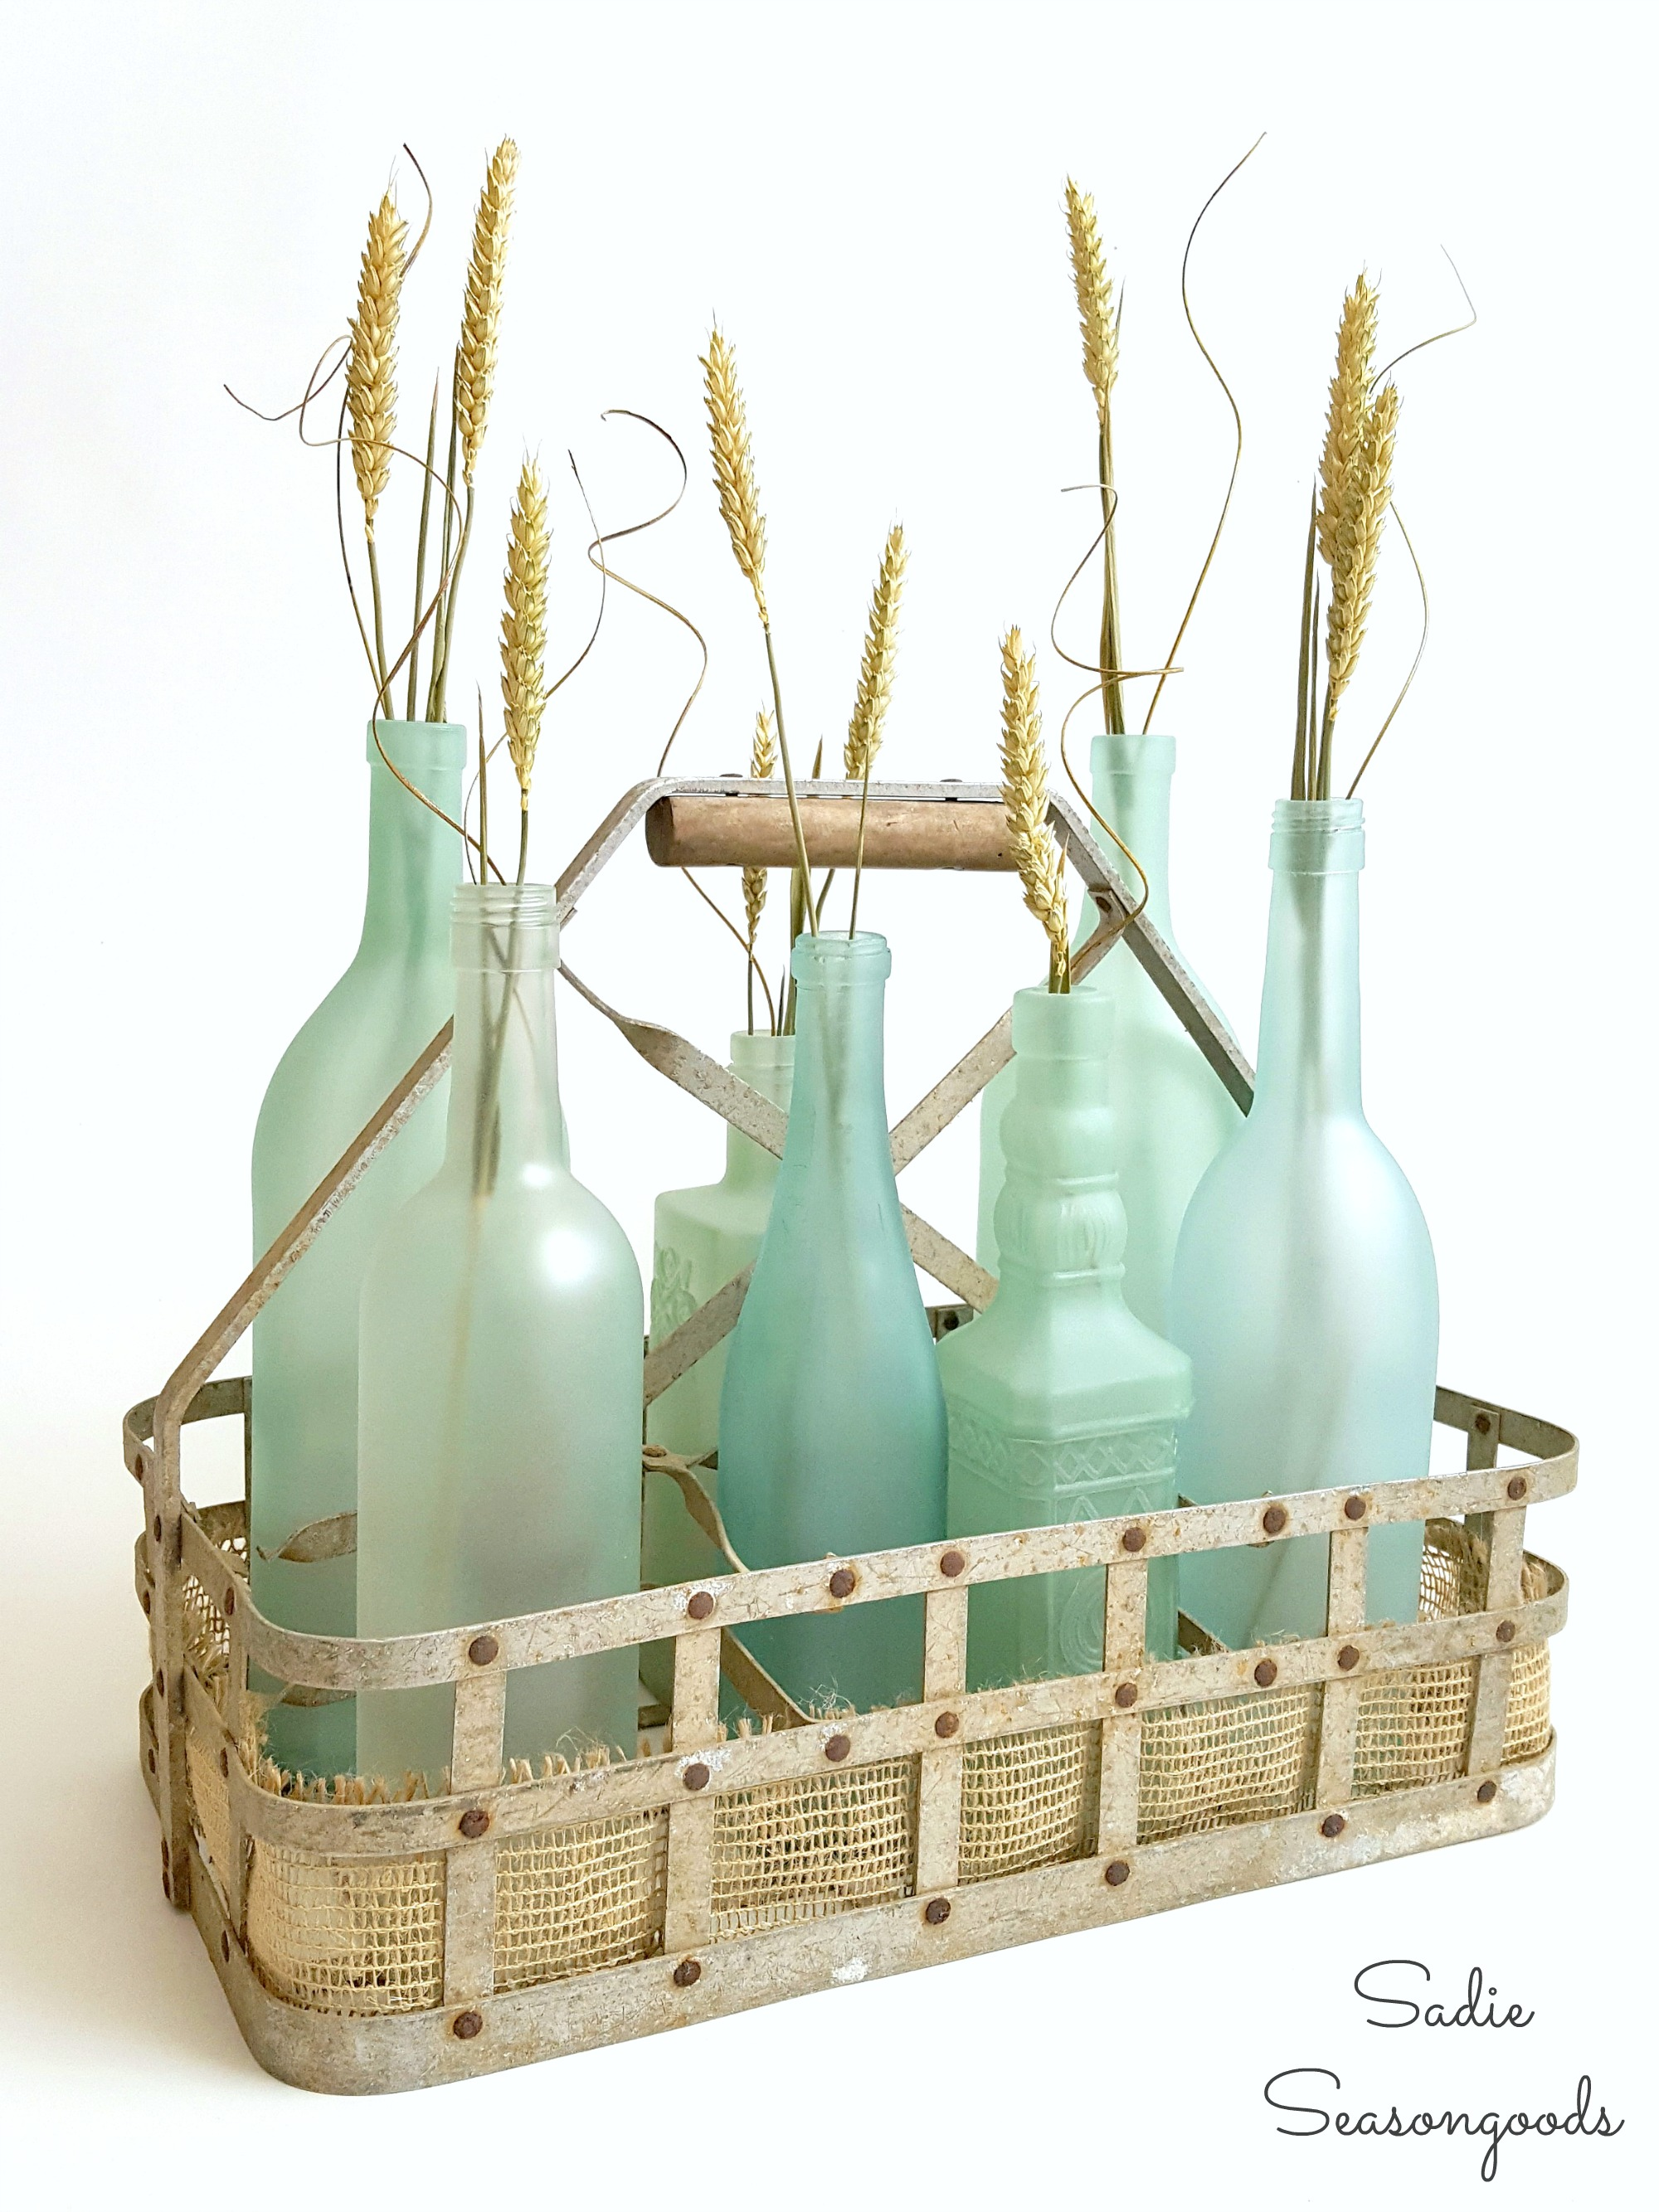 These re-purposed glass bottles are great coastal decor accents.